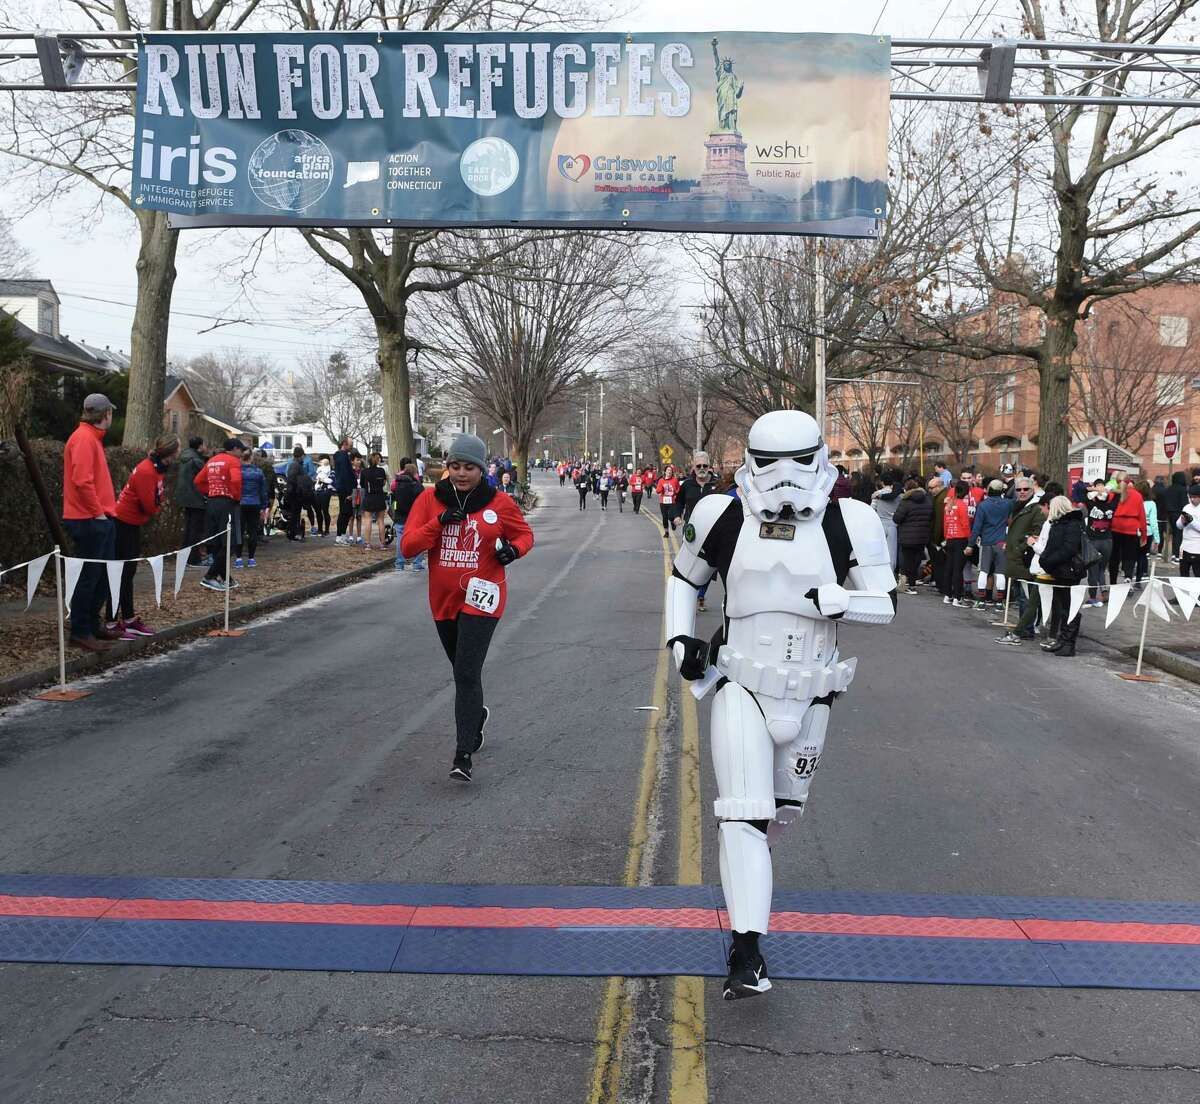 Thousands run in the 12th Annual IRIS Run for Refugees 5K in New Haven on February 3, 2019.